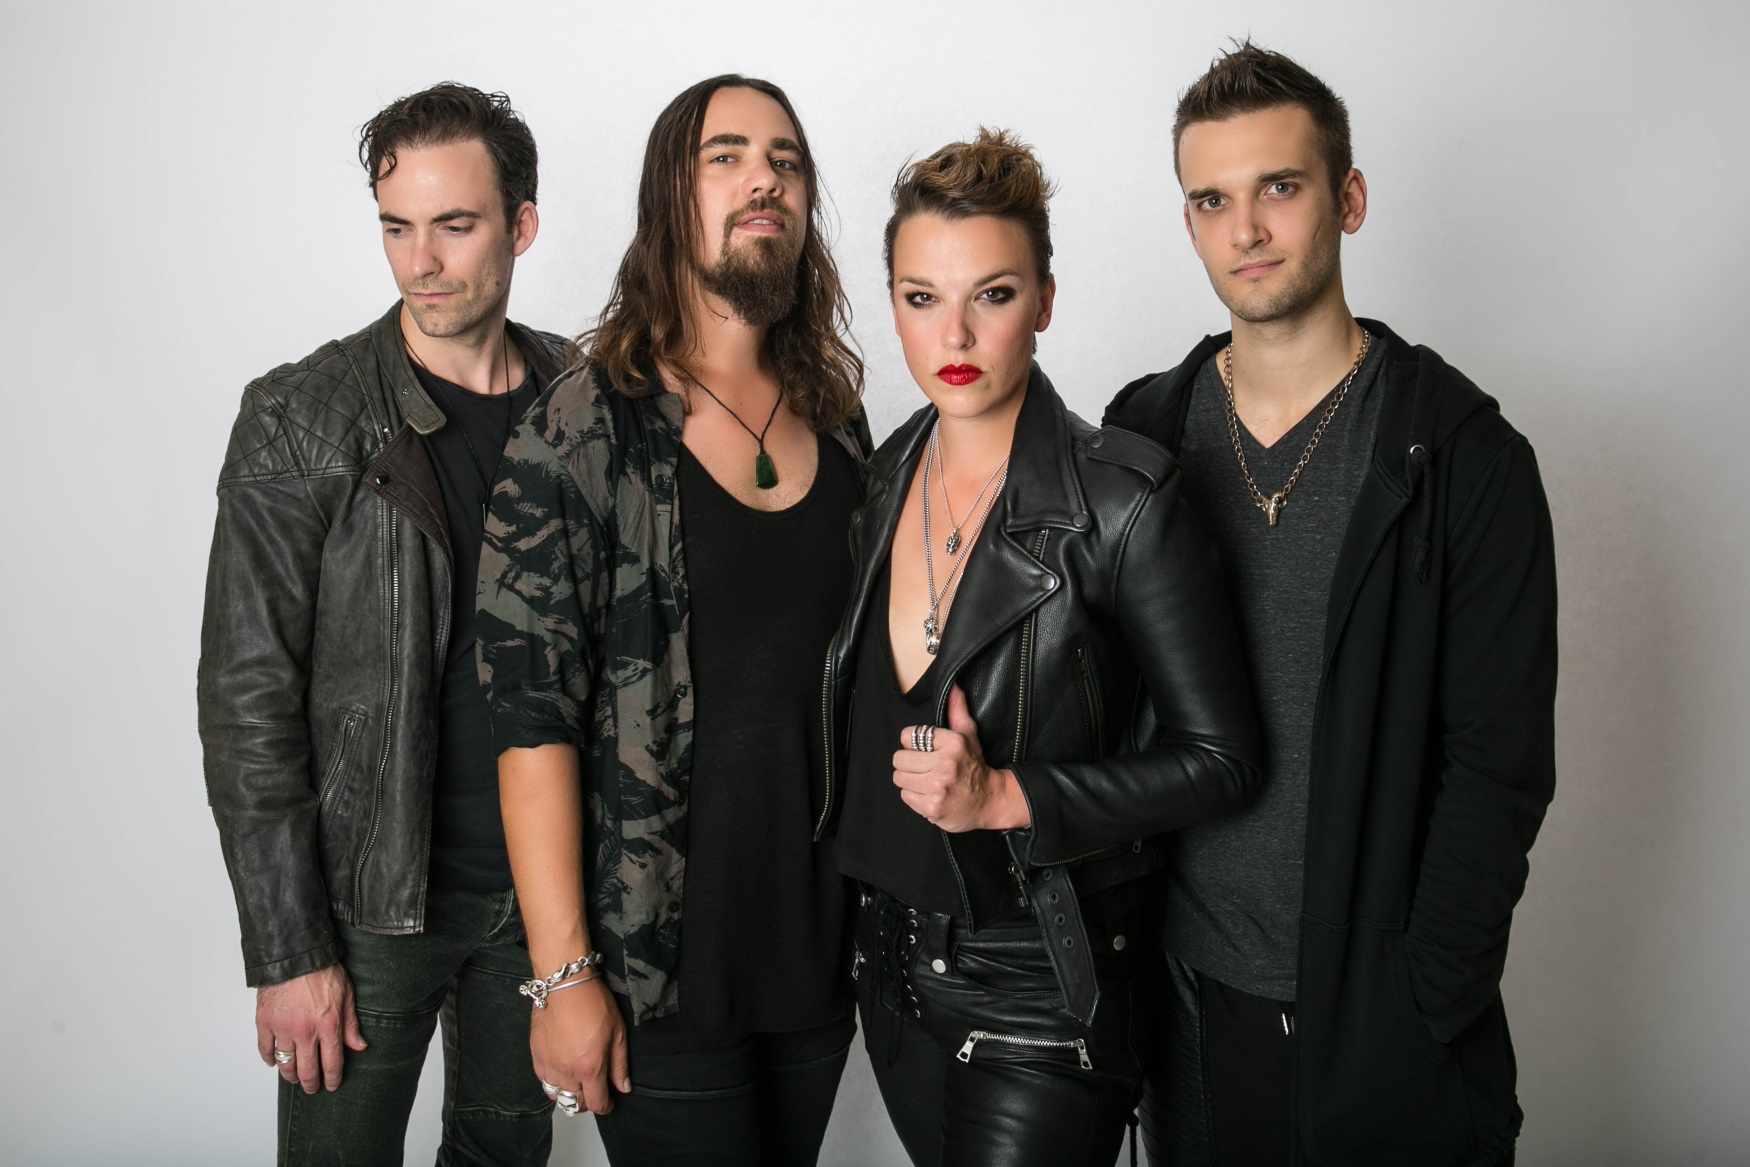 HALESTORM sell out biggest tour, confirm support